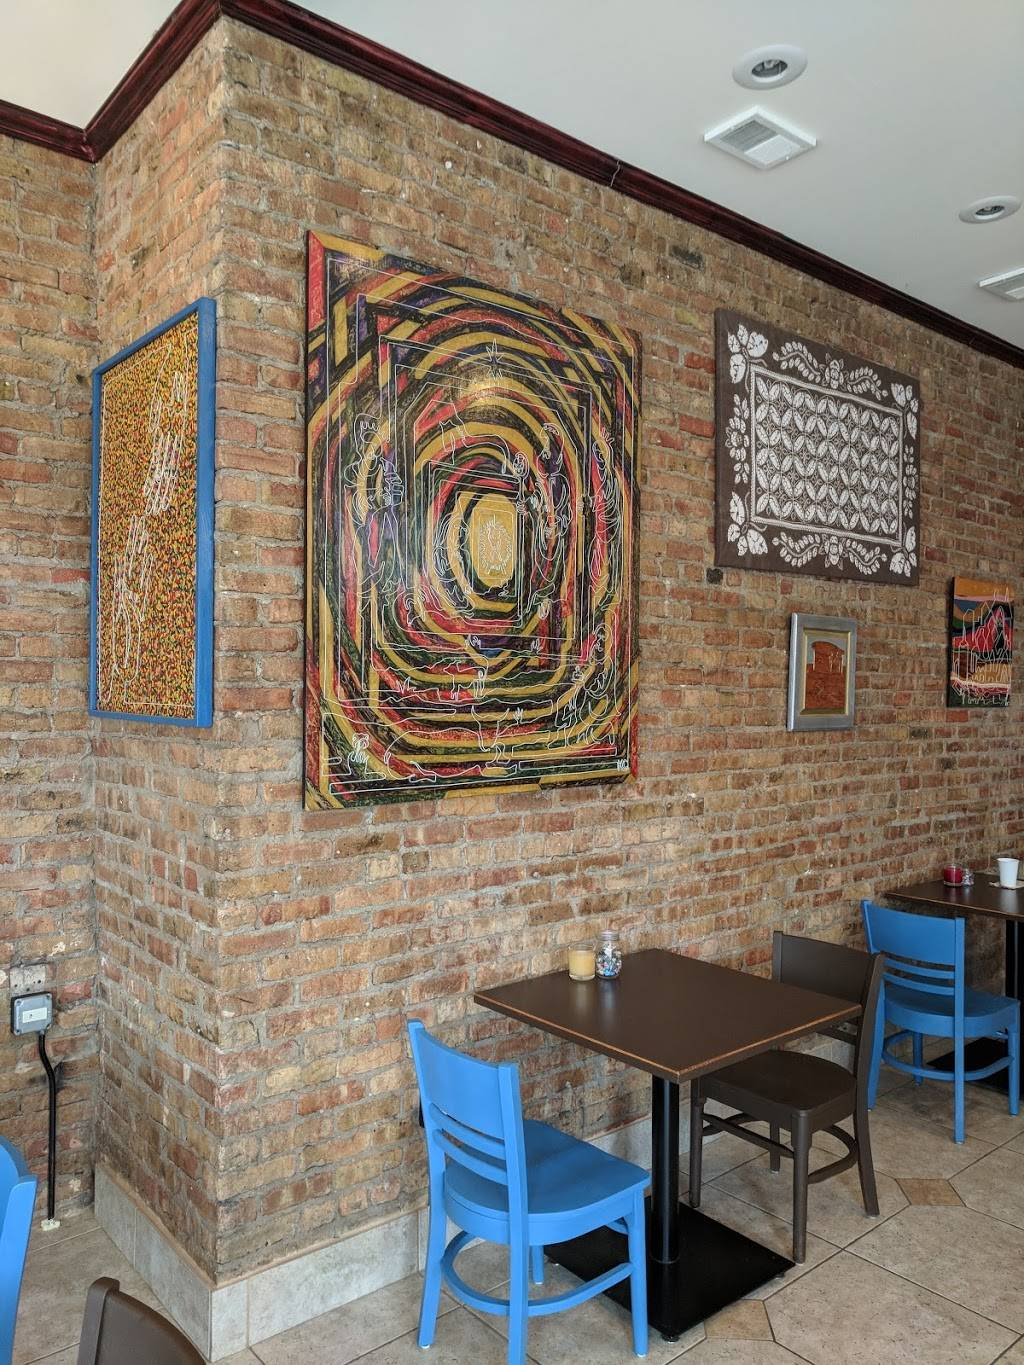 Cafe El Meson 2 | cafe | 6624 N Clark St, Chicago, IL 60626, USA | 7737264510 OR +1 773-726-4510